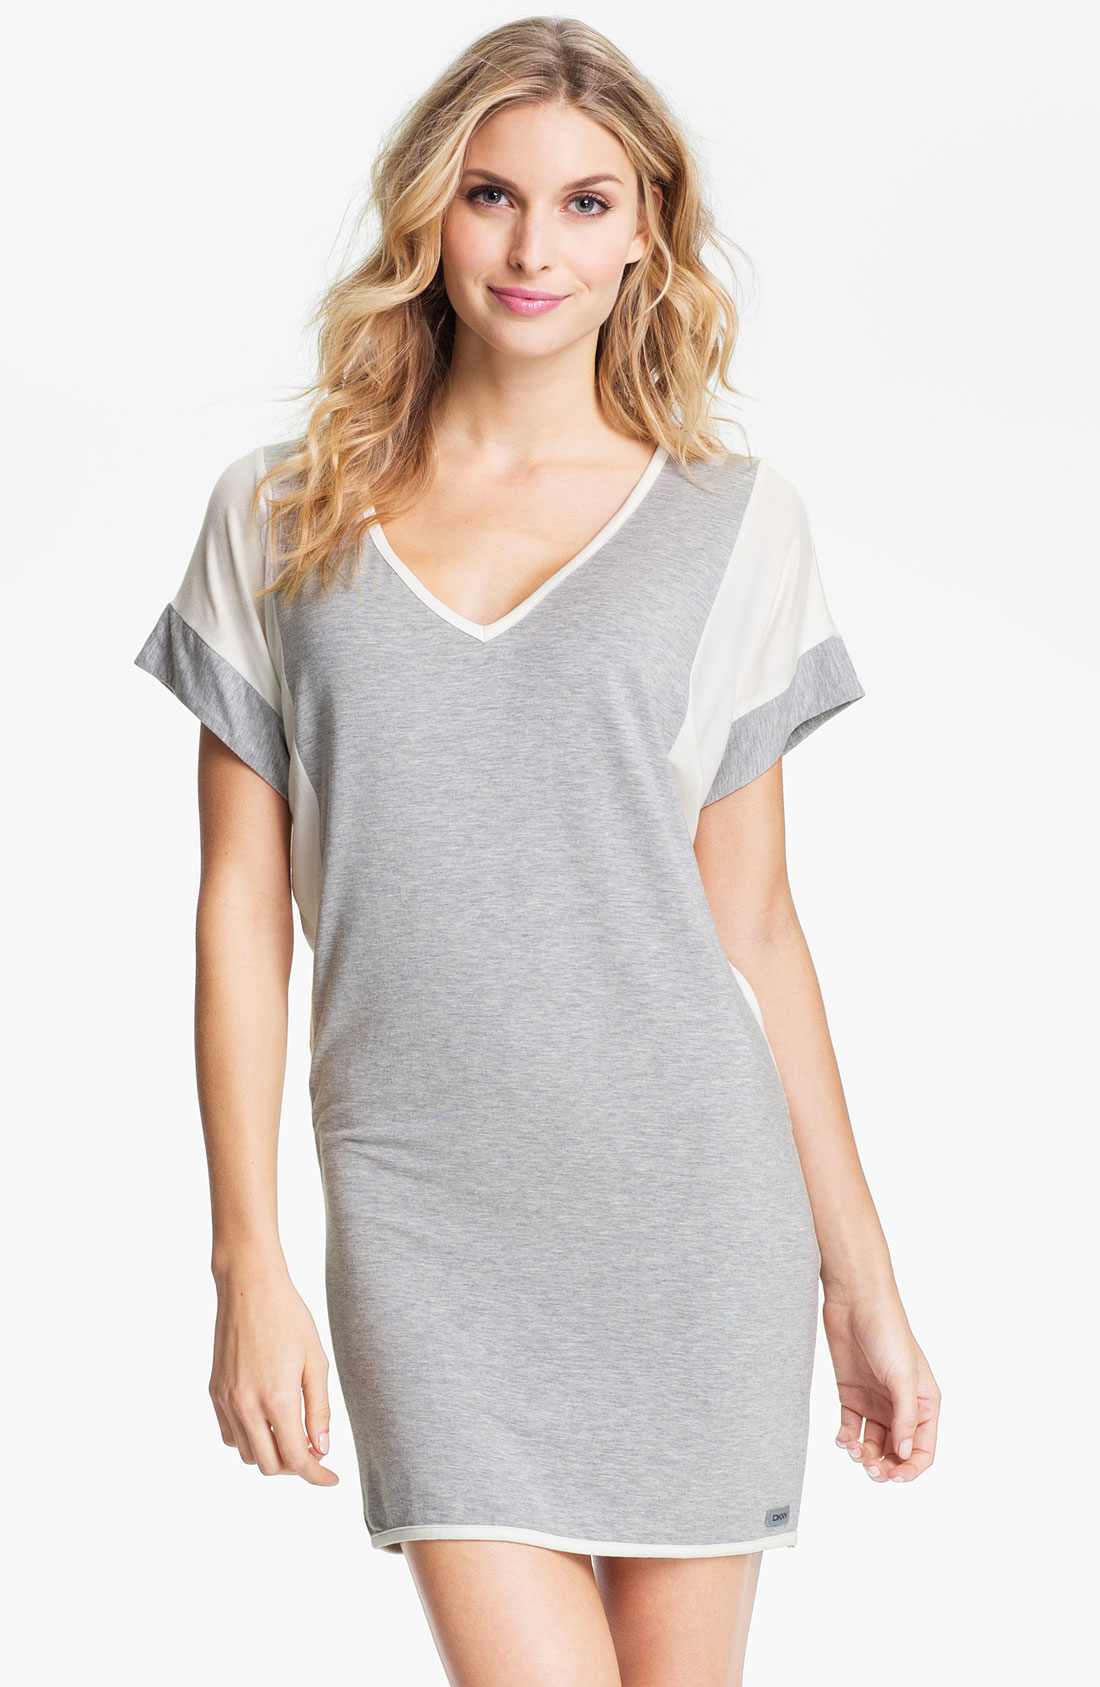 dkny short sleeve sleep shirt in gray grey heather lyst